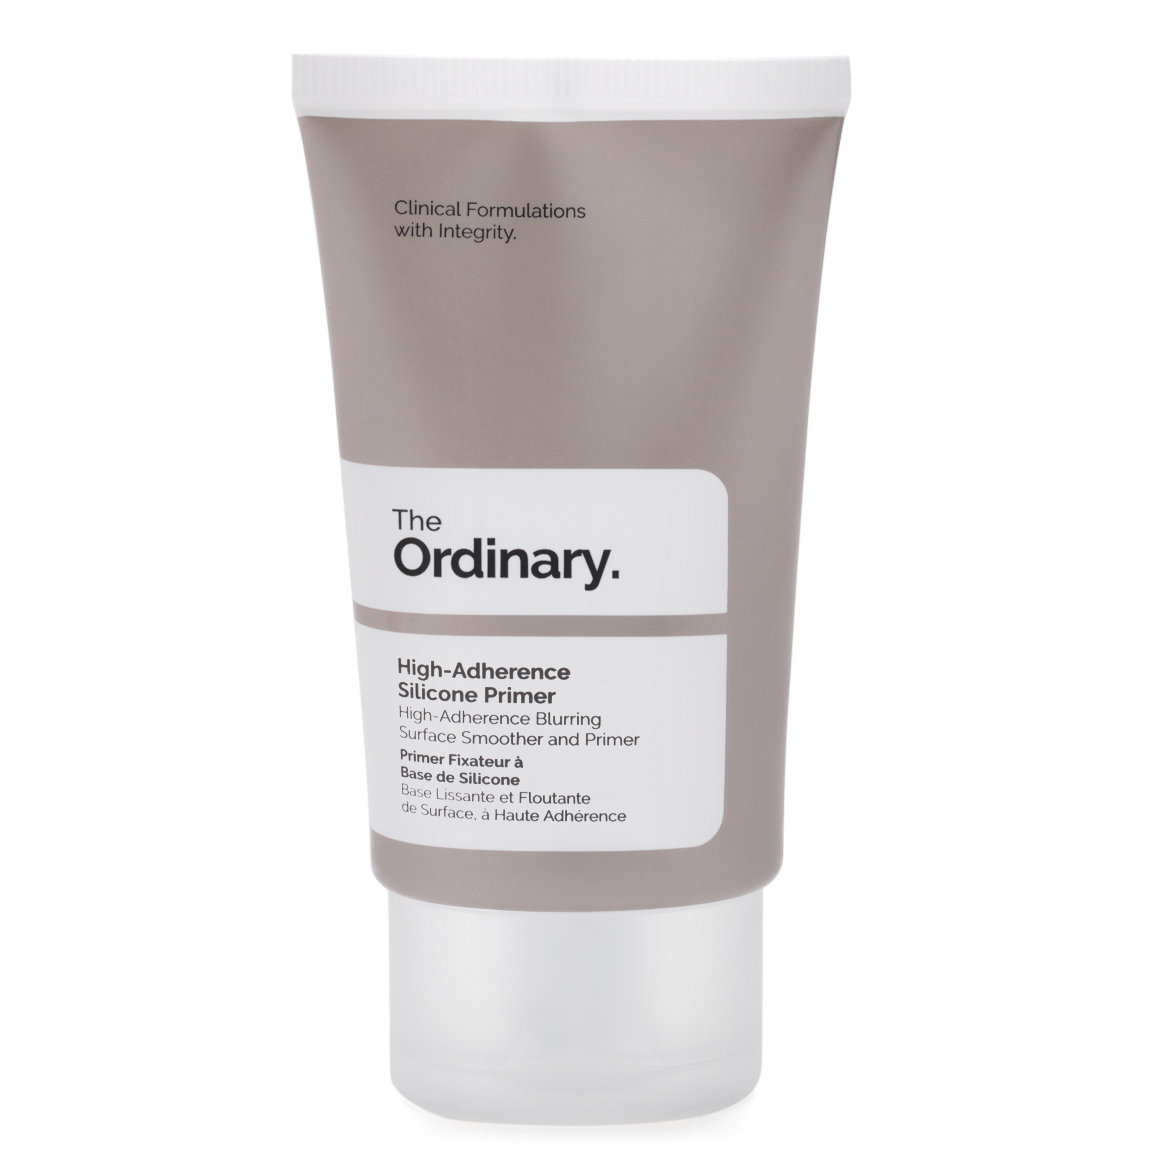 The Ordinary. High-Adherence Silicone Primer product swatch.